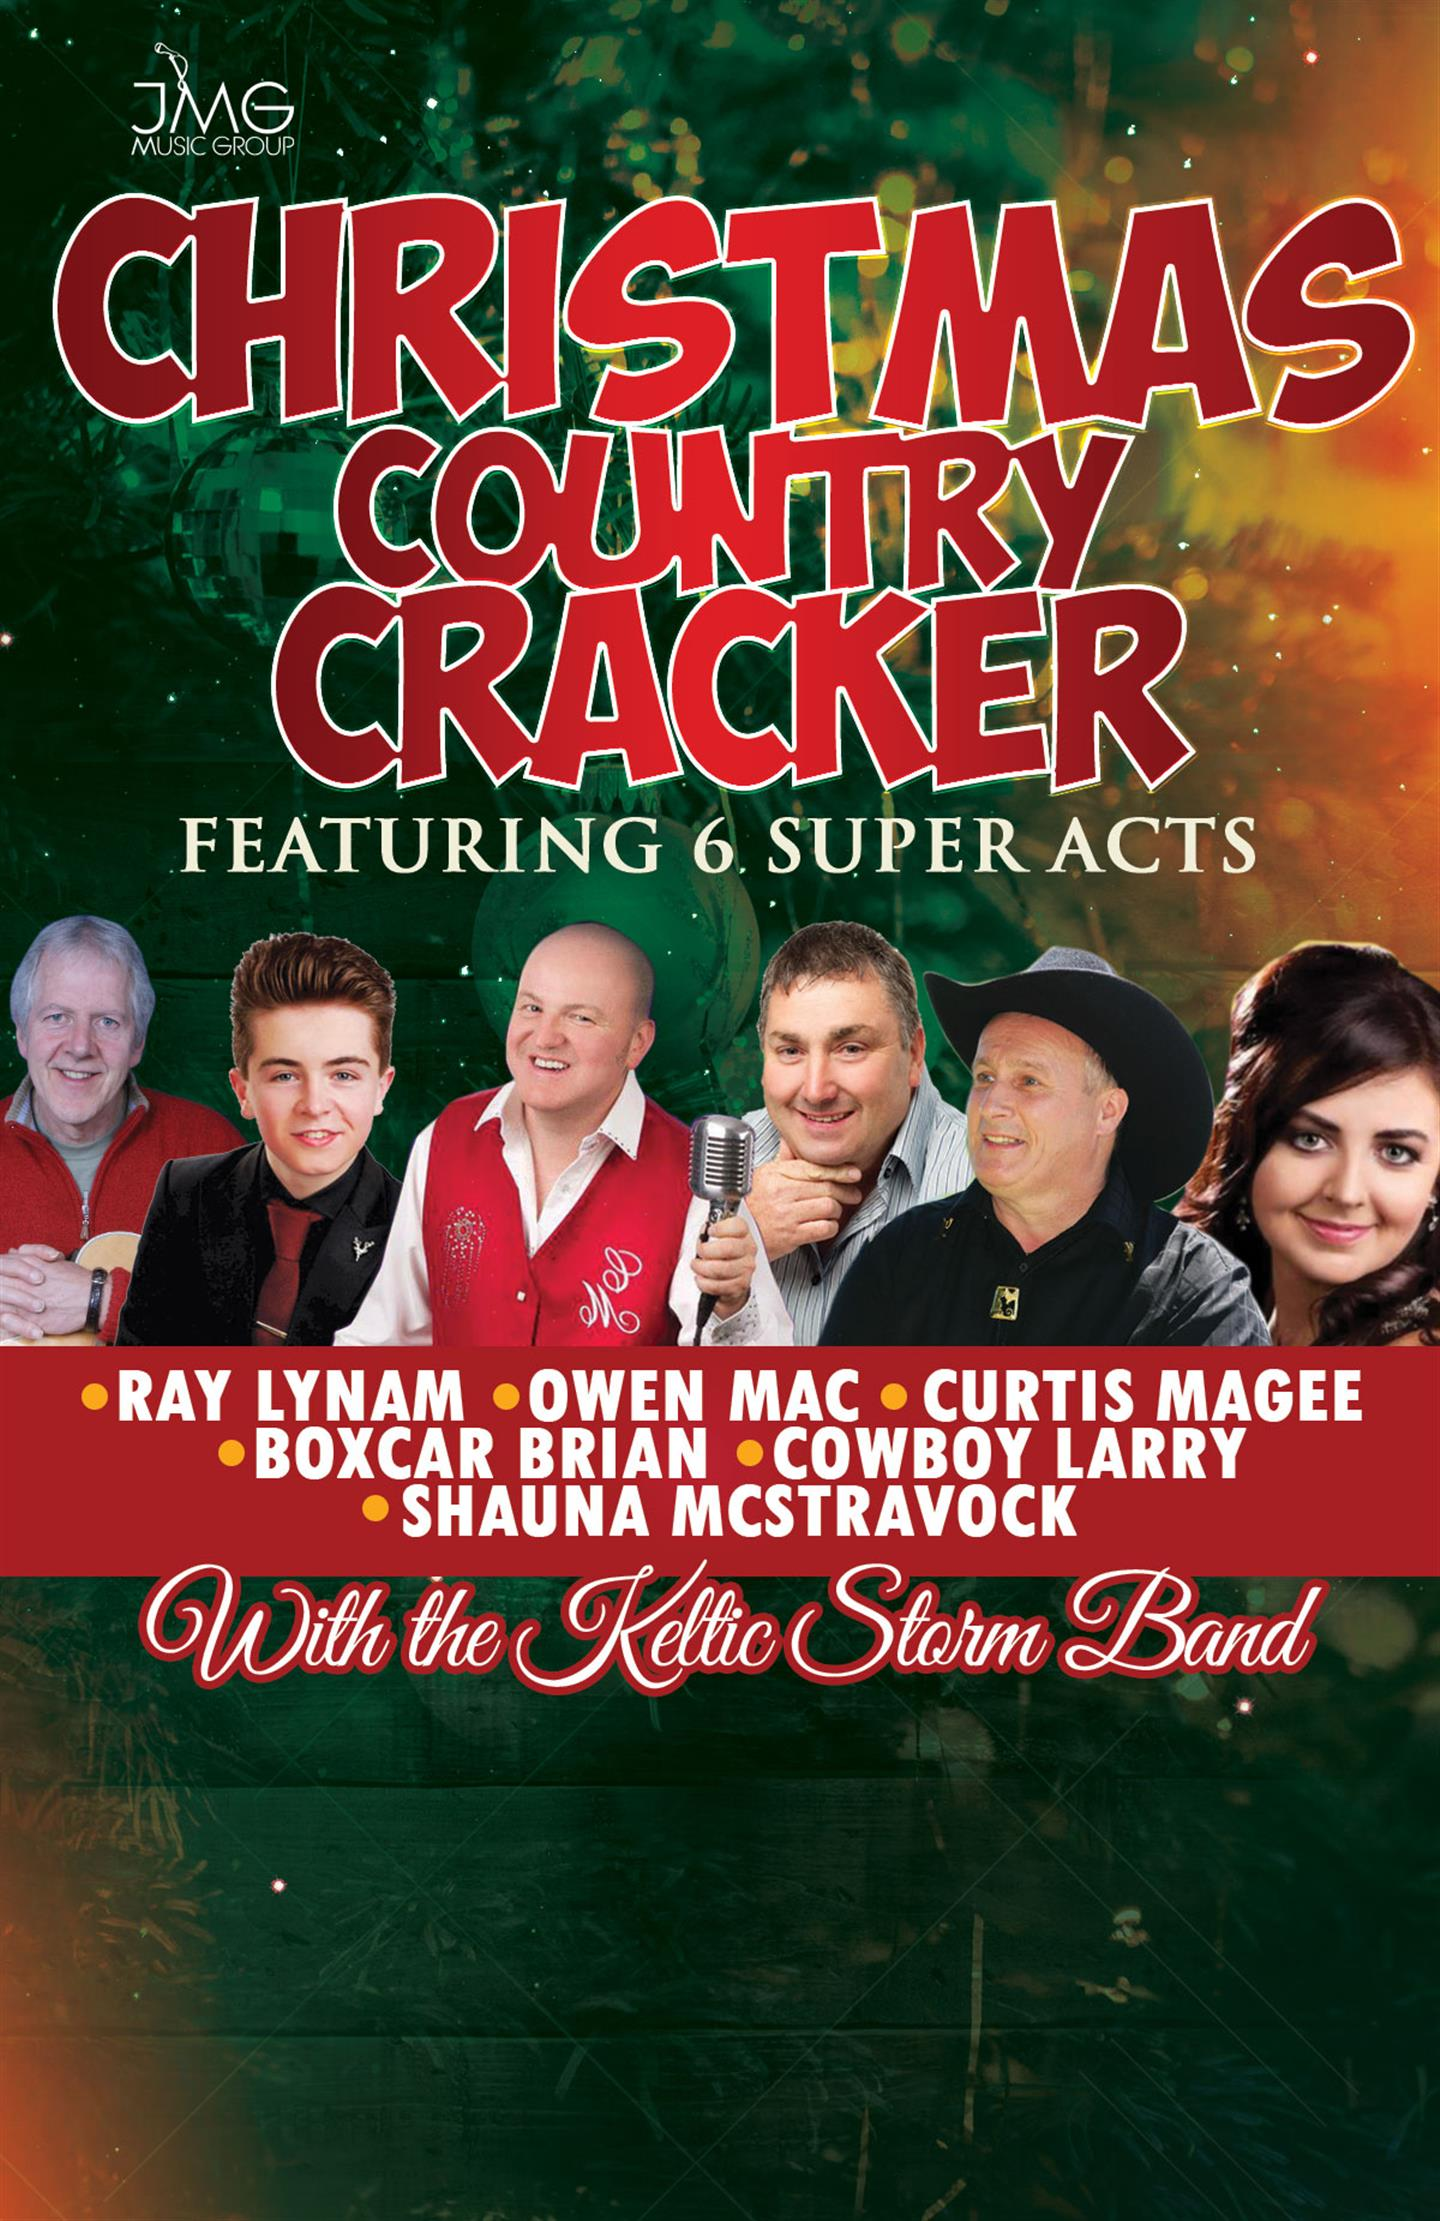 Christmas Country Cracker by JMG Music Group